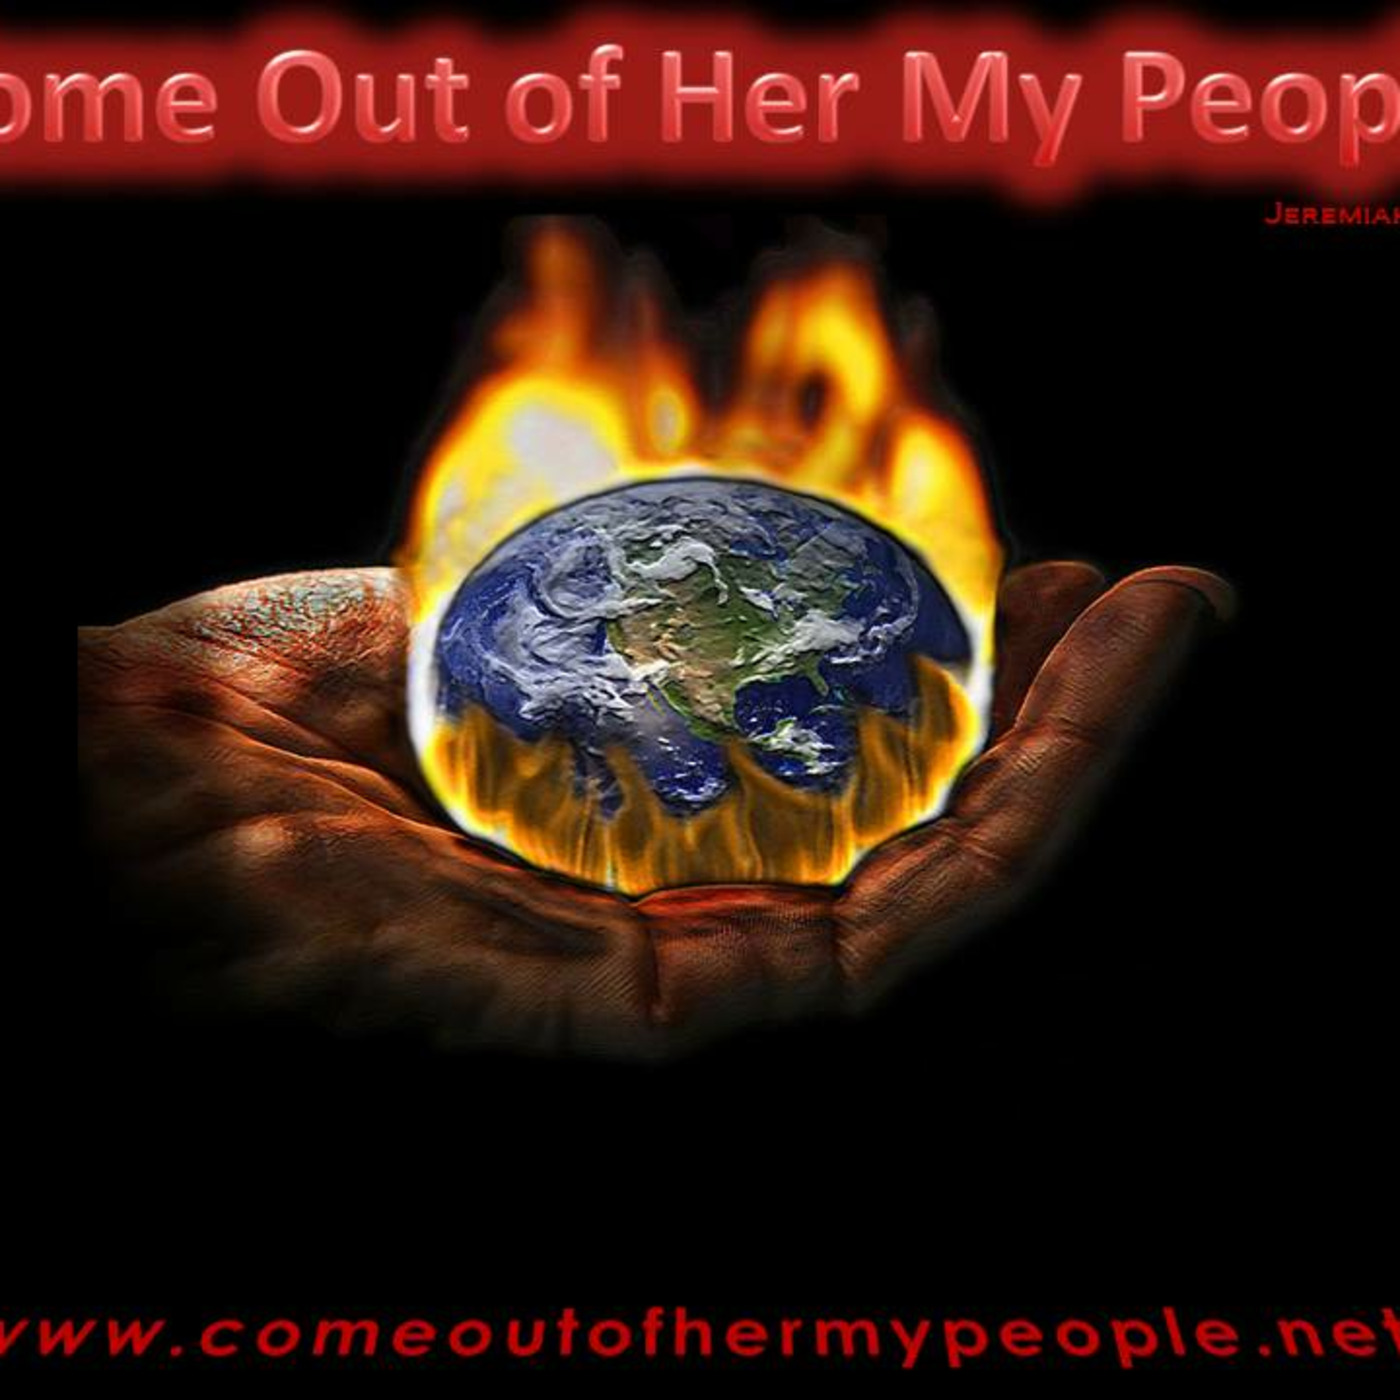 Come Out of Her My People